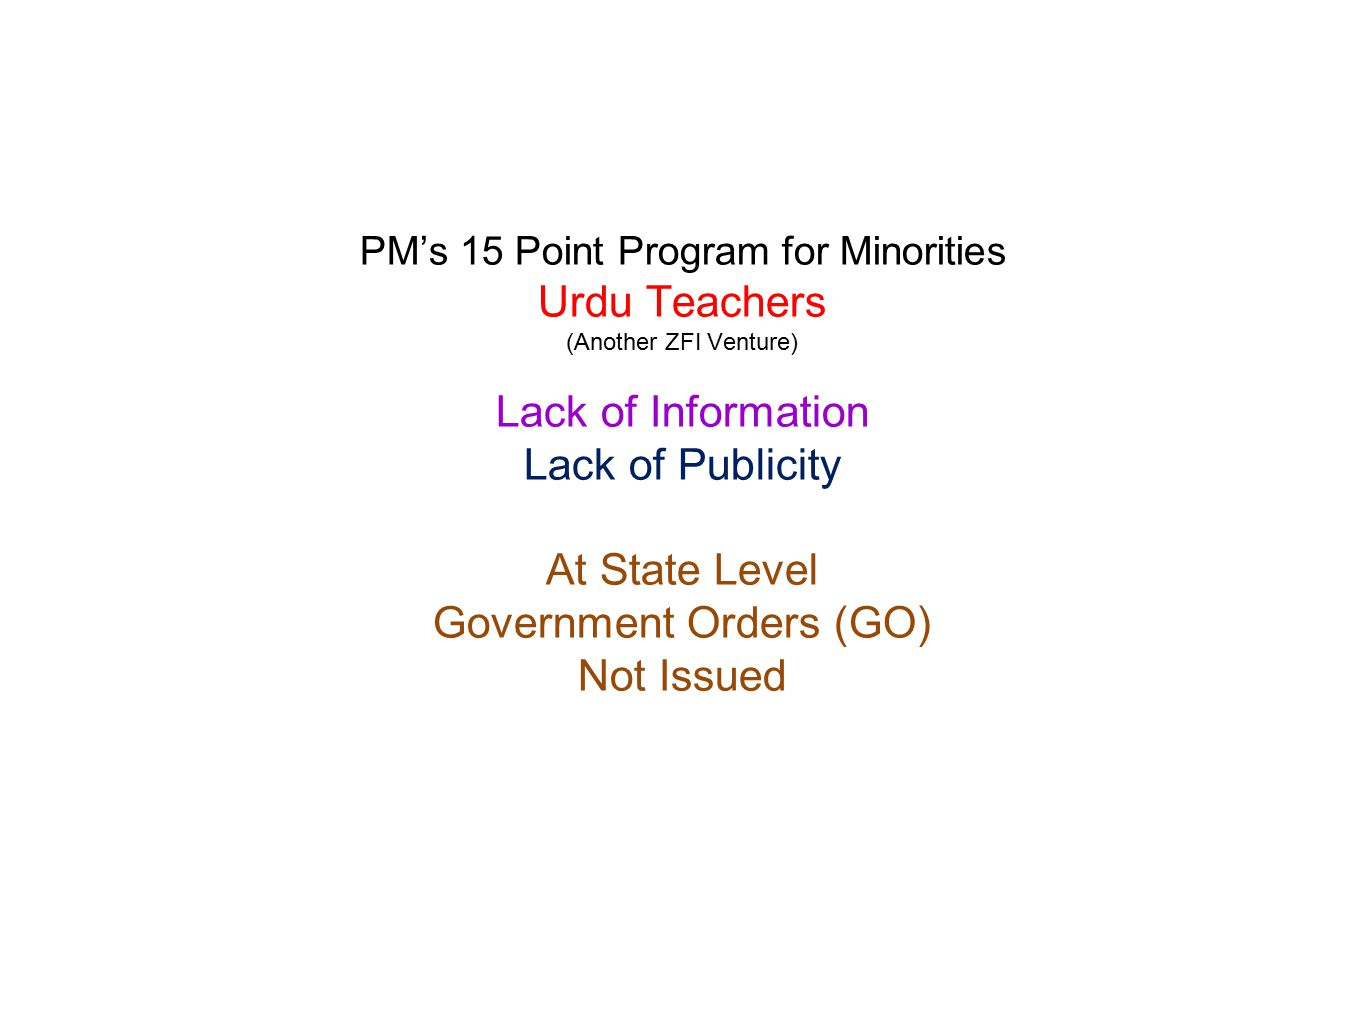 PM's 15 Point Program for Minorities Urdu Teachers (Another ZFI Venture) Lack of Information Lack of Publicity At State Level Government Orders (GO) N